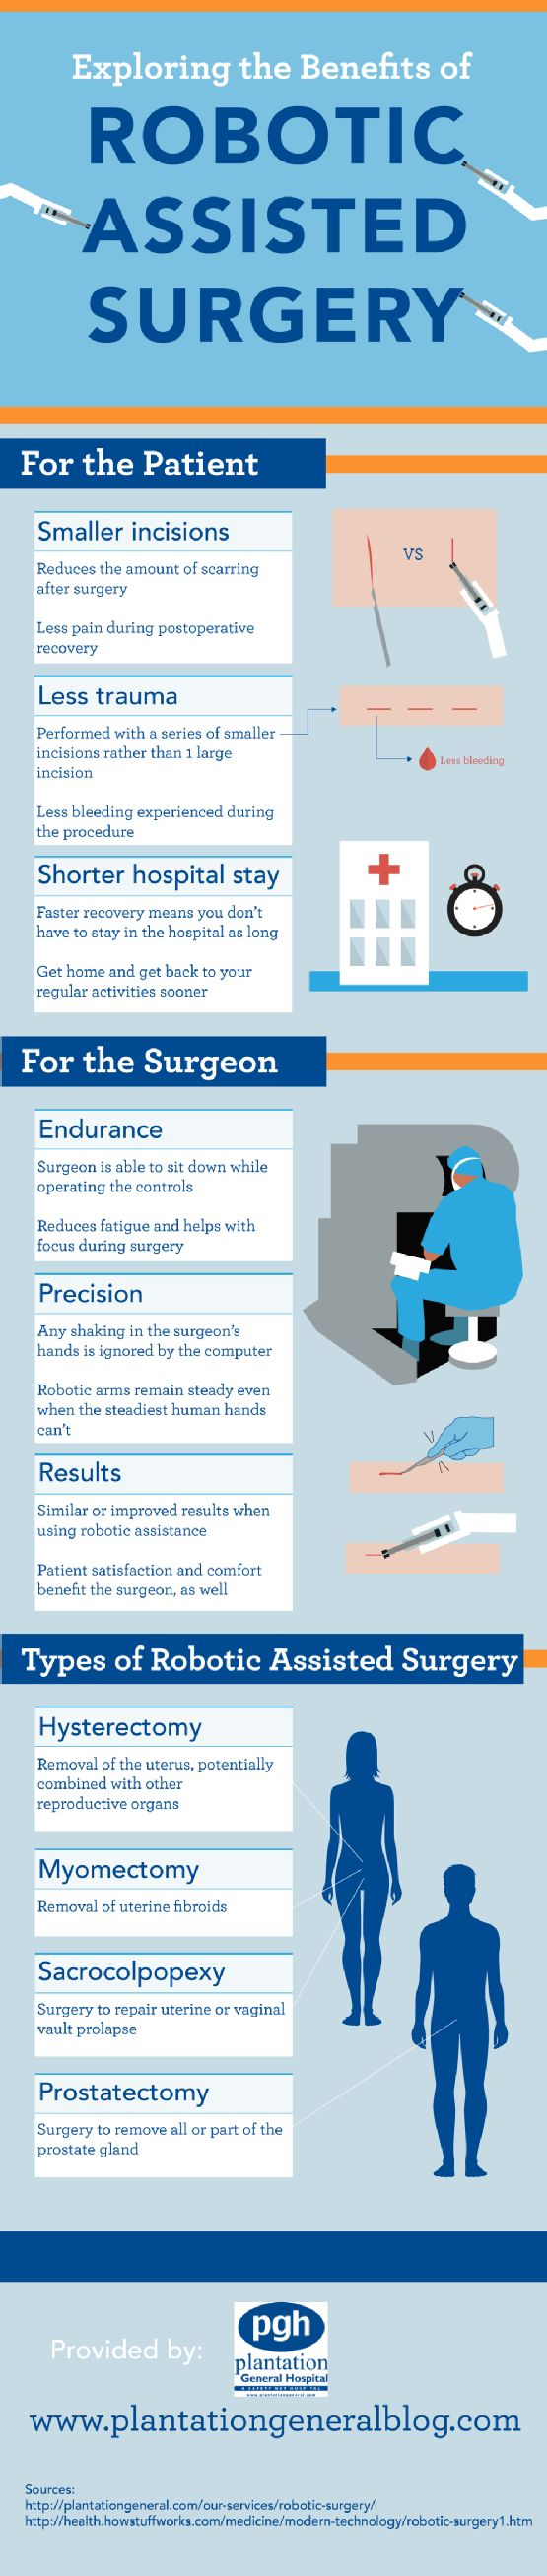 Both patients and surgeons can benefit from choosing robotic surgery over traditional surgery! Take a look at this infographic from a heart health center in Plantation to get the details about robotic surgery benefits for patients and surgeons alike.